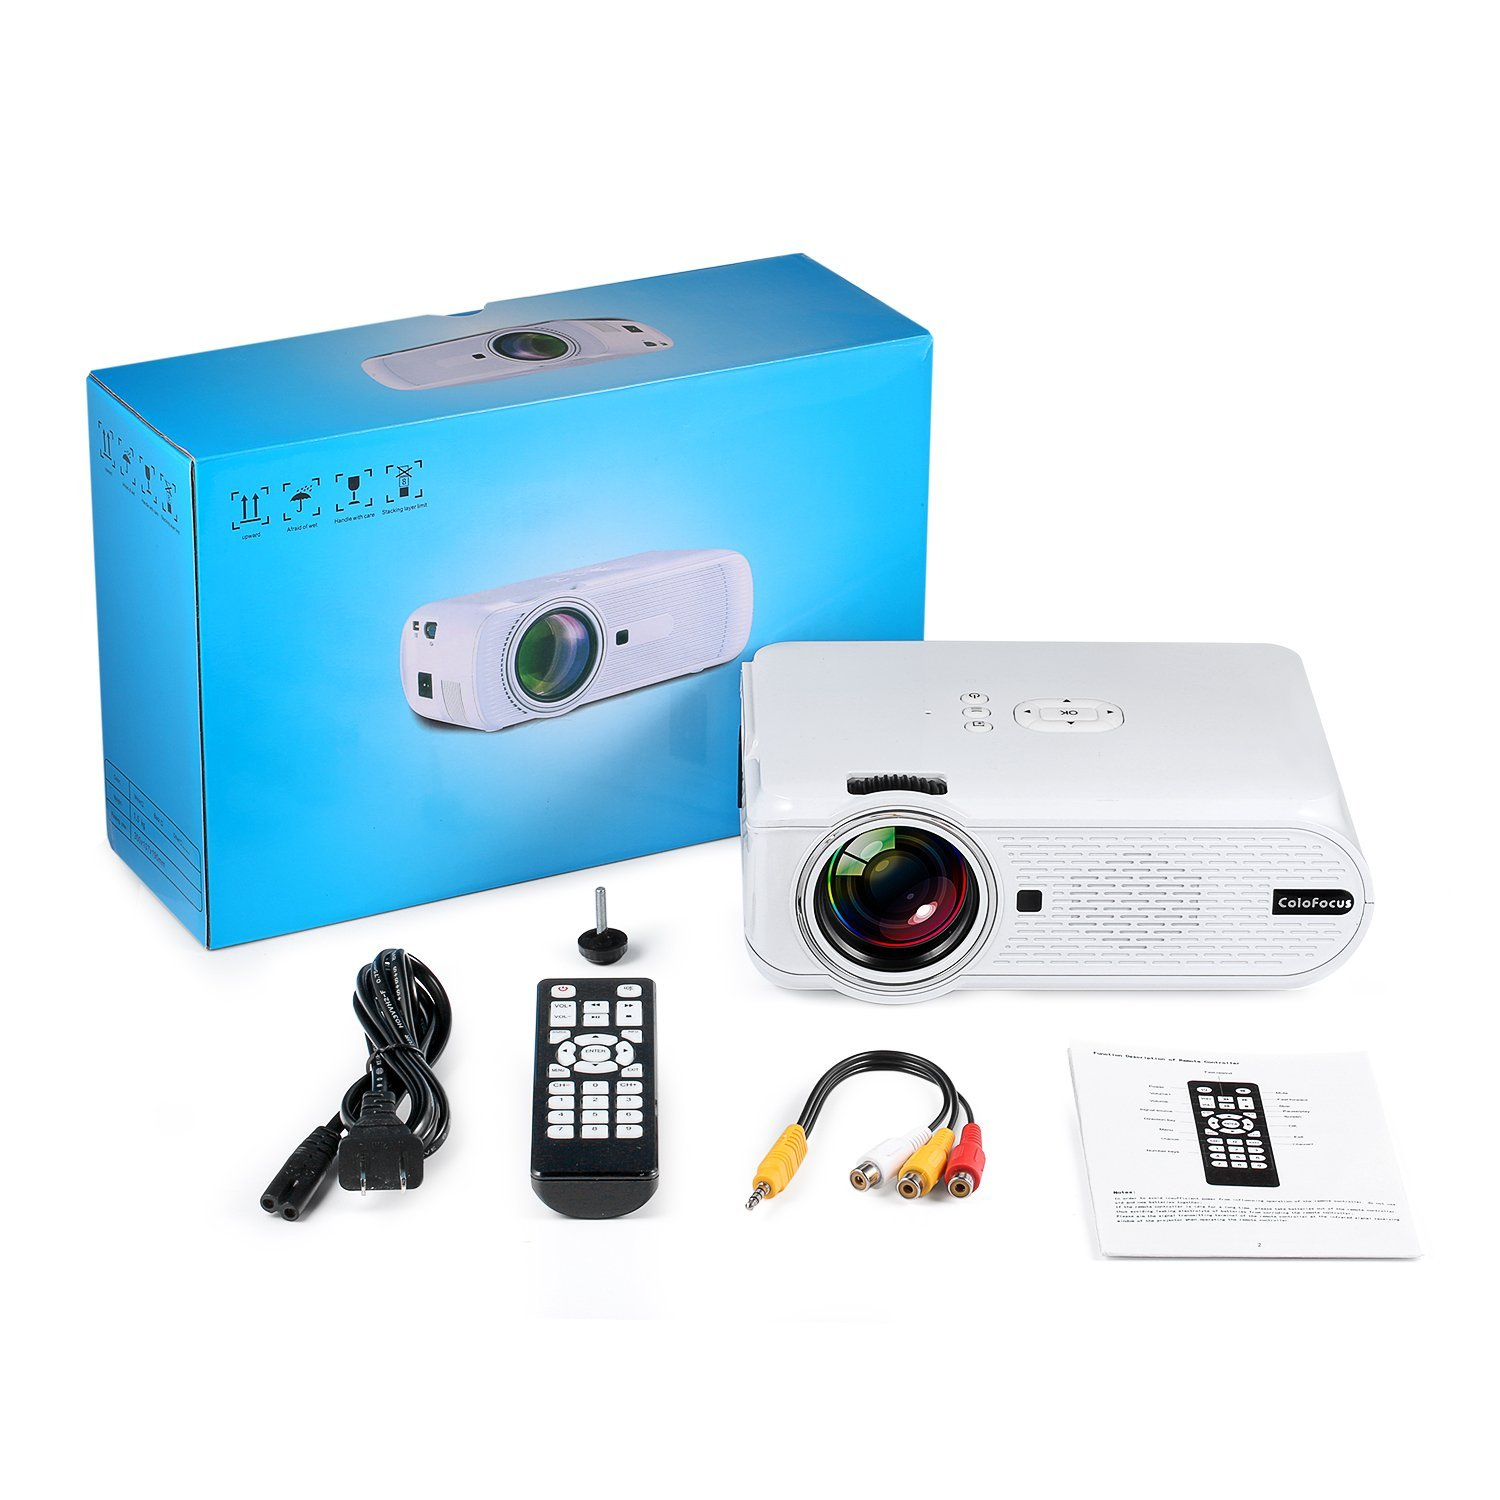 Hd projector home video mini projector with 1080p for Best mini projector for presentations